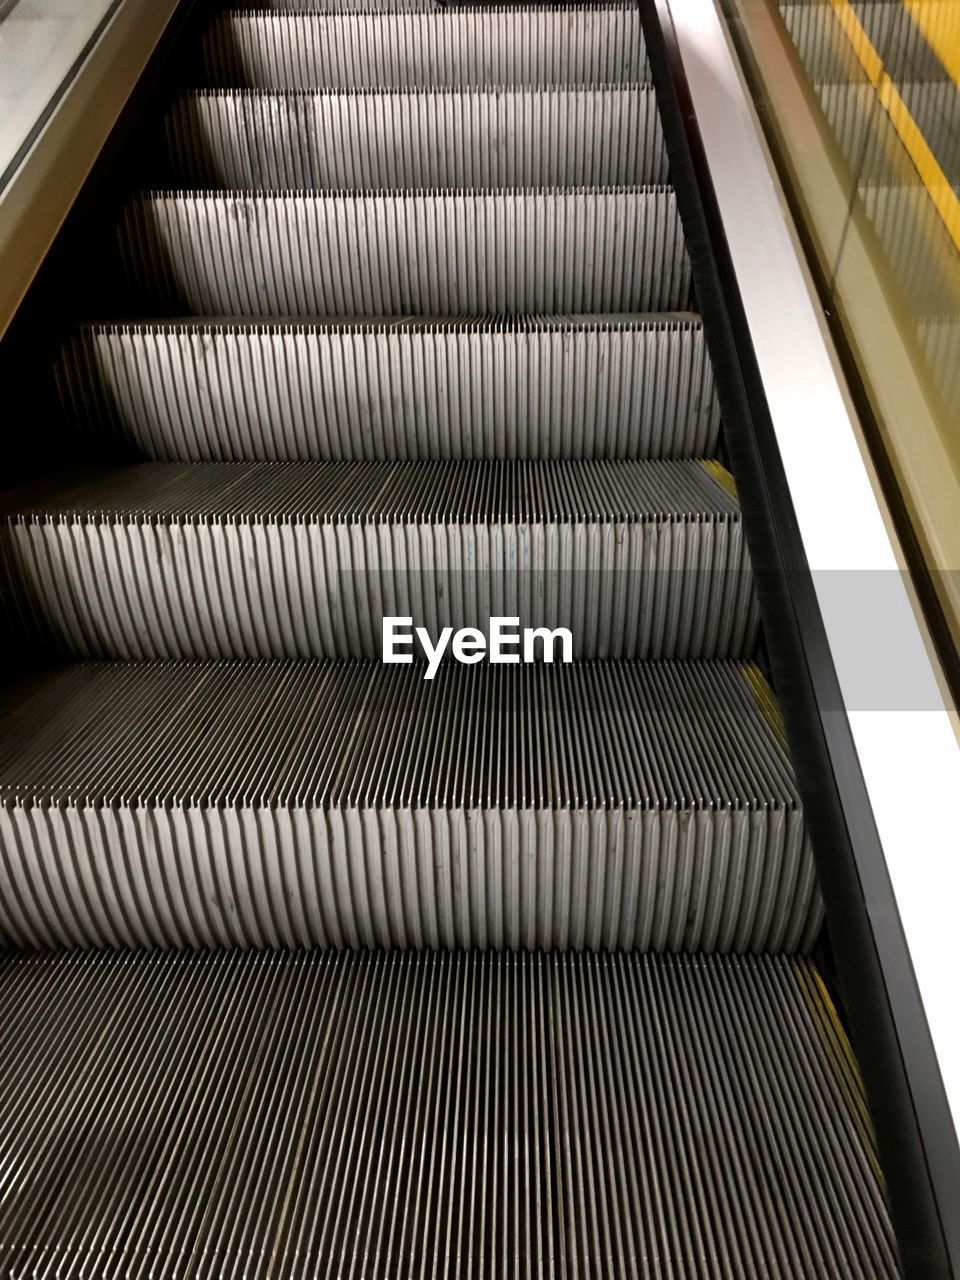 escalator, indoors, architecture, pattern, convenience, transportation, the way forward, steps and staircases, railing, staircase, direction, no people, high angle view, technology, modern, built structure, empty, connection, illuminated, moving walkway, ceiling, silver colored